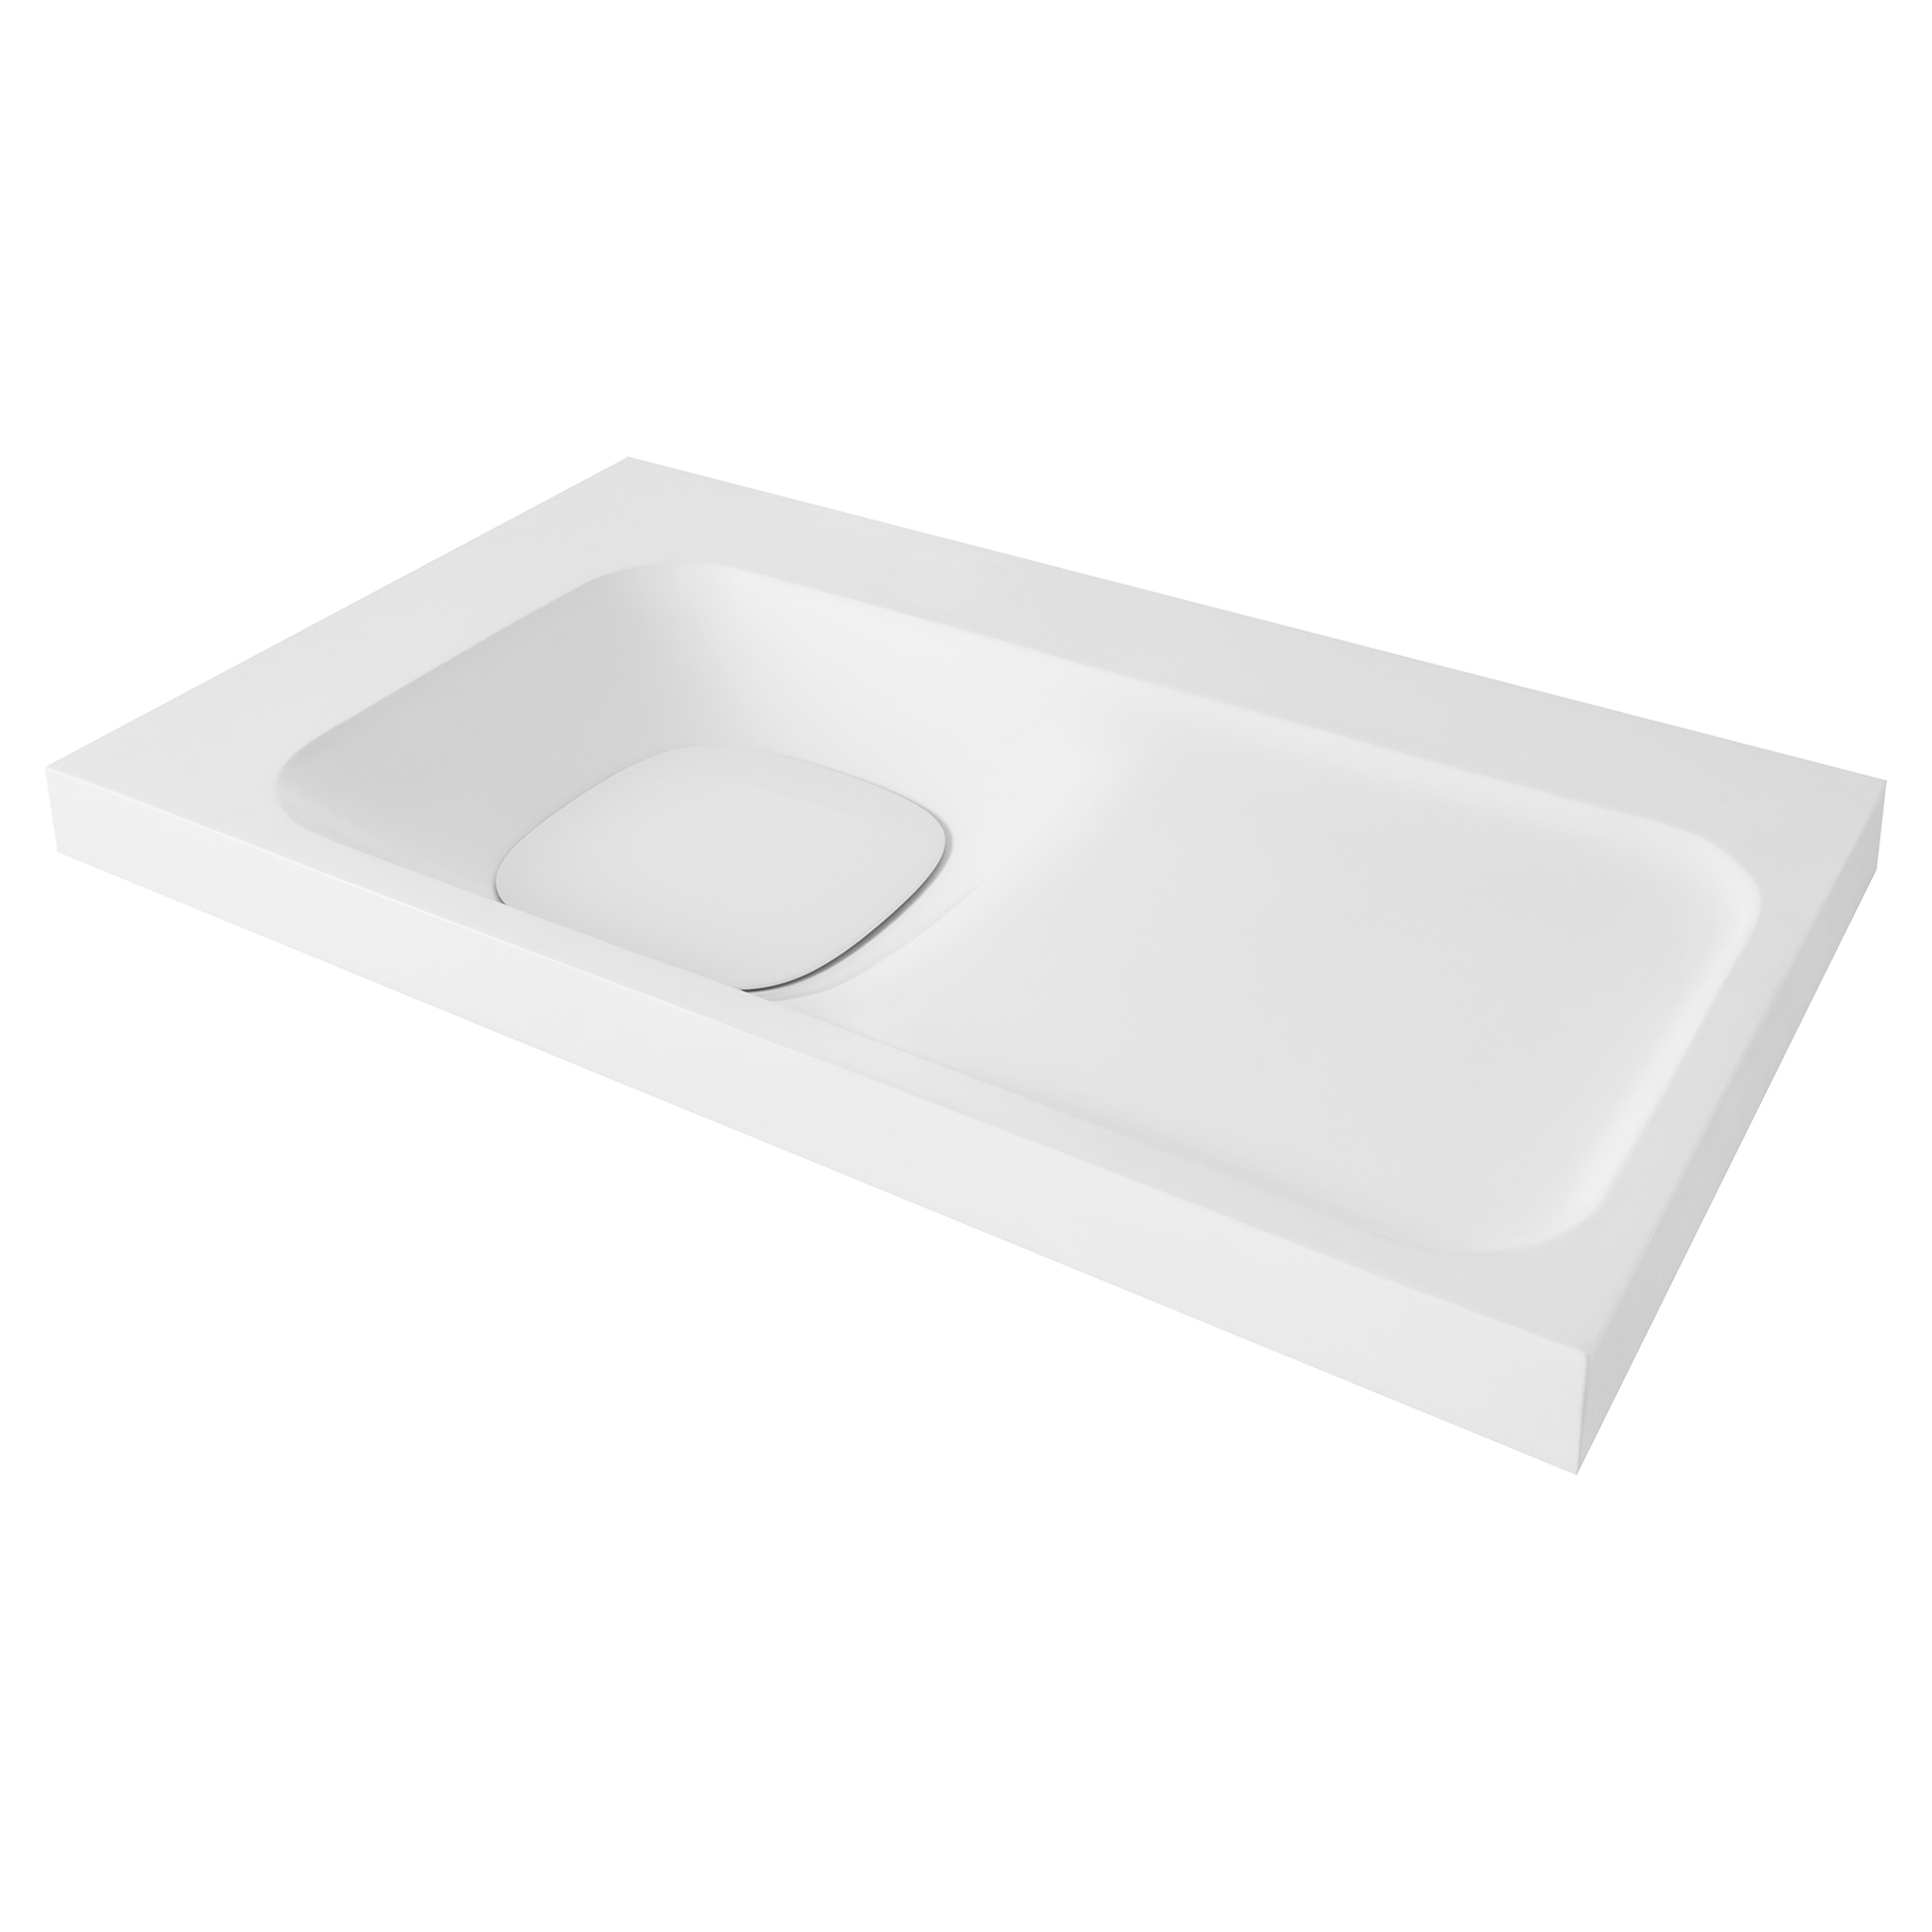 DXV Modulus 36-inch Bathroom Sink